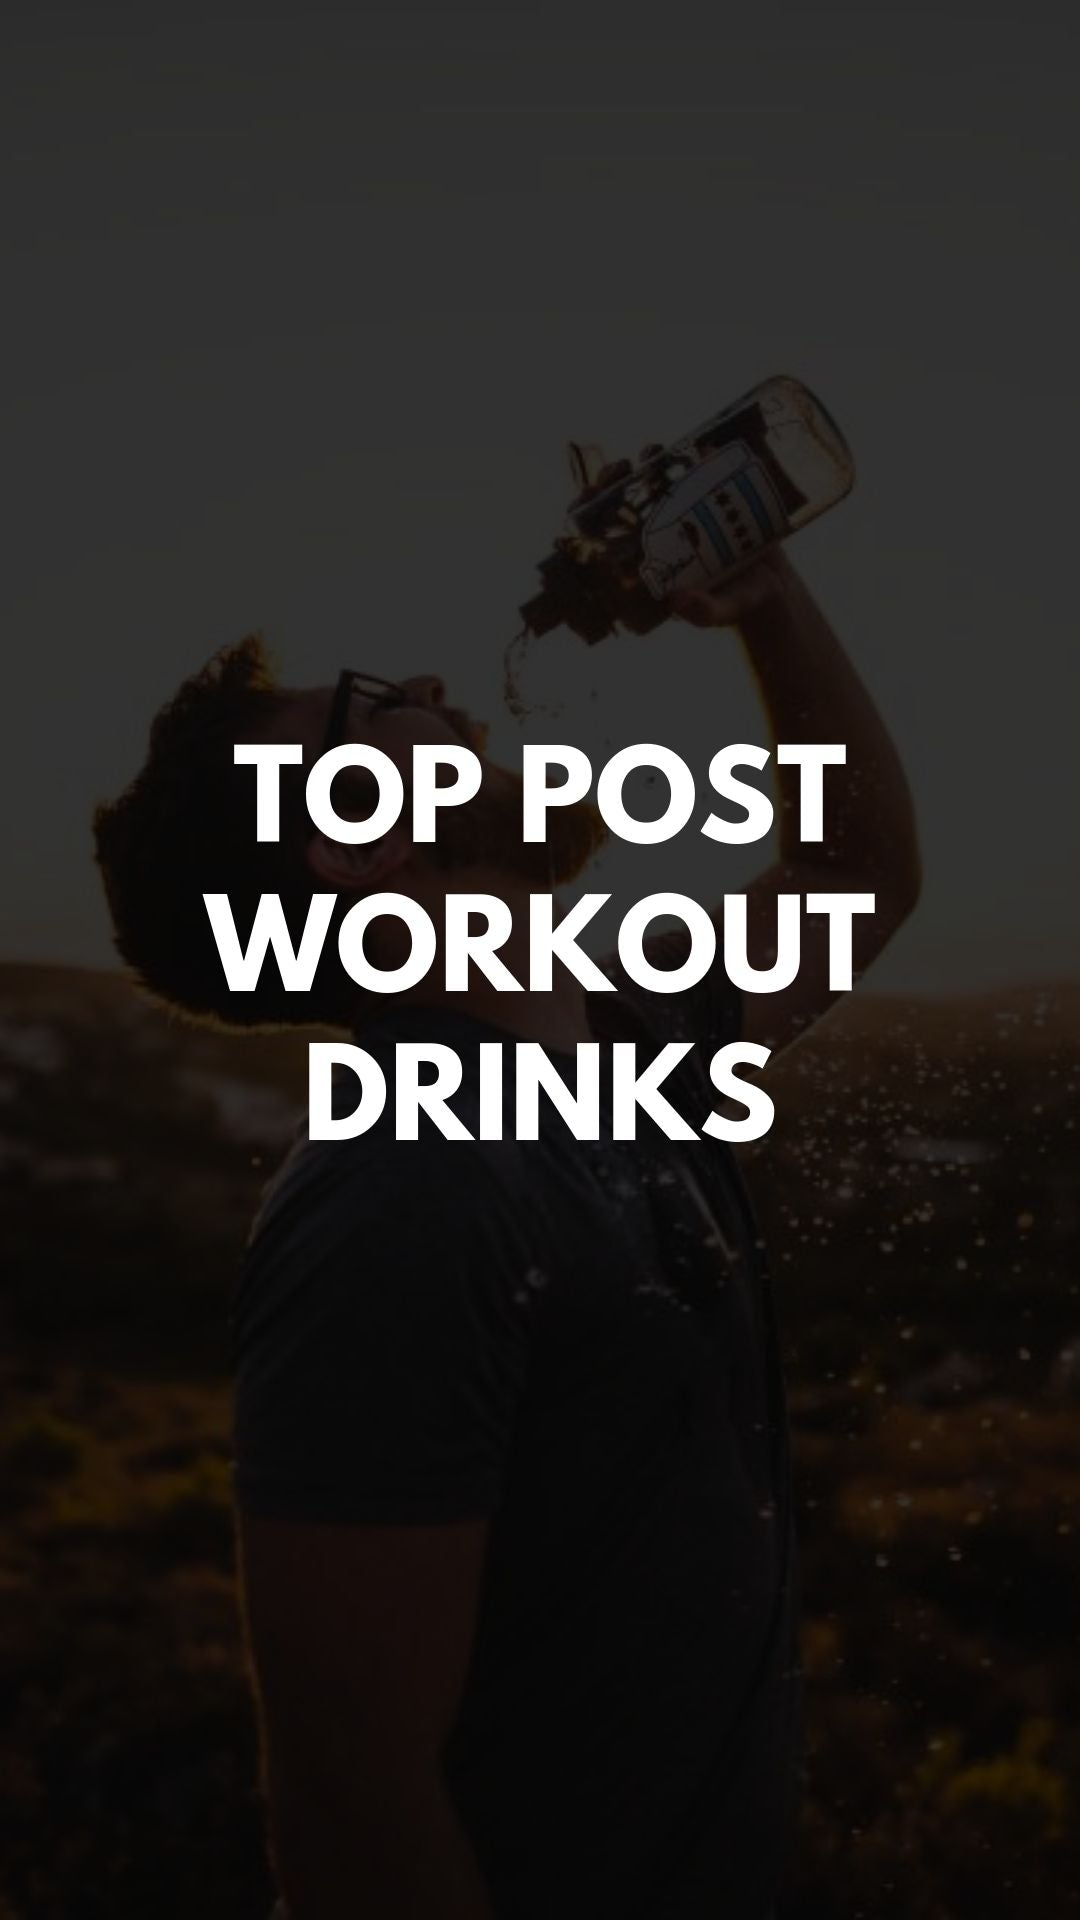 The Best Post Workout Drinks